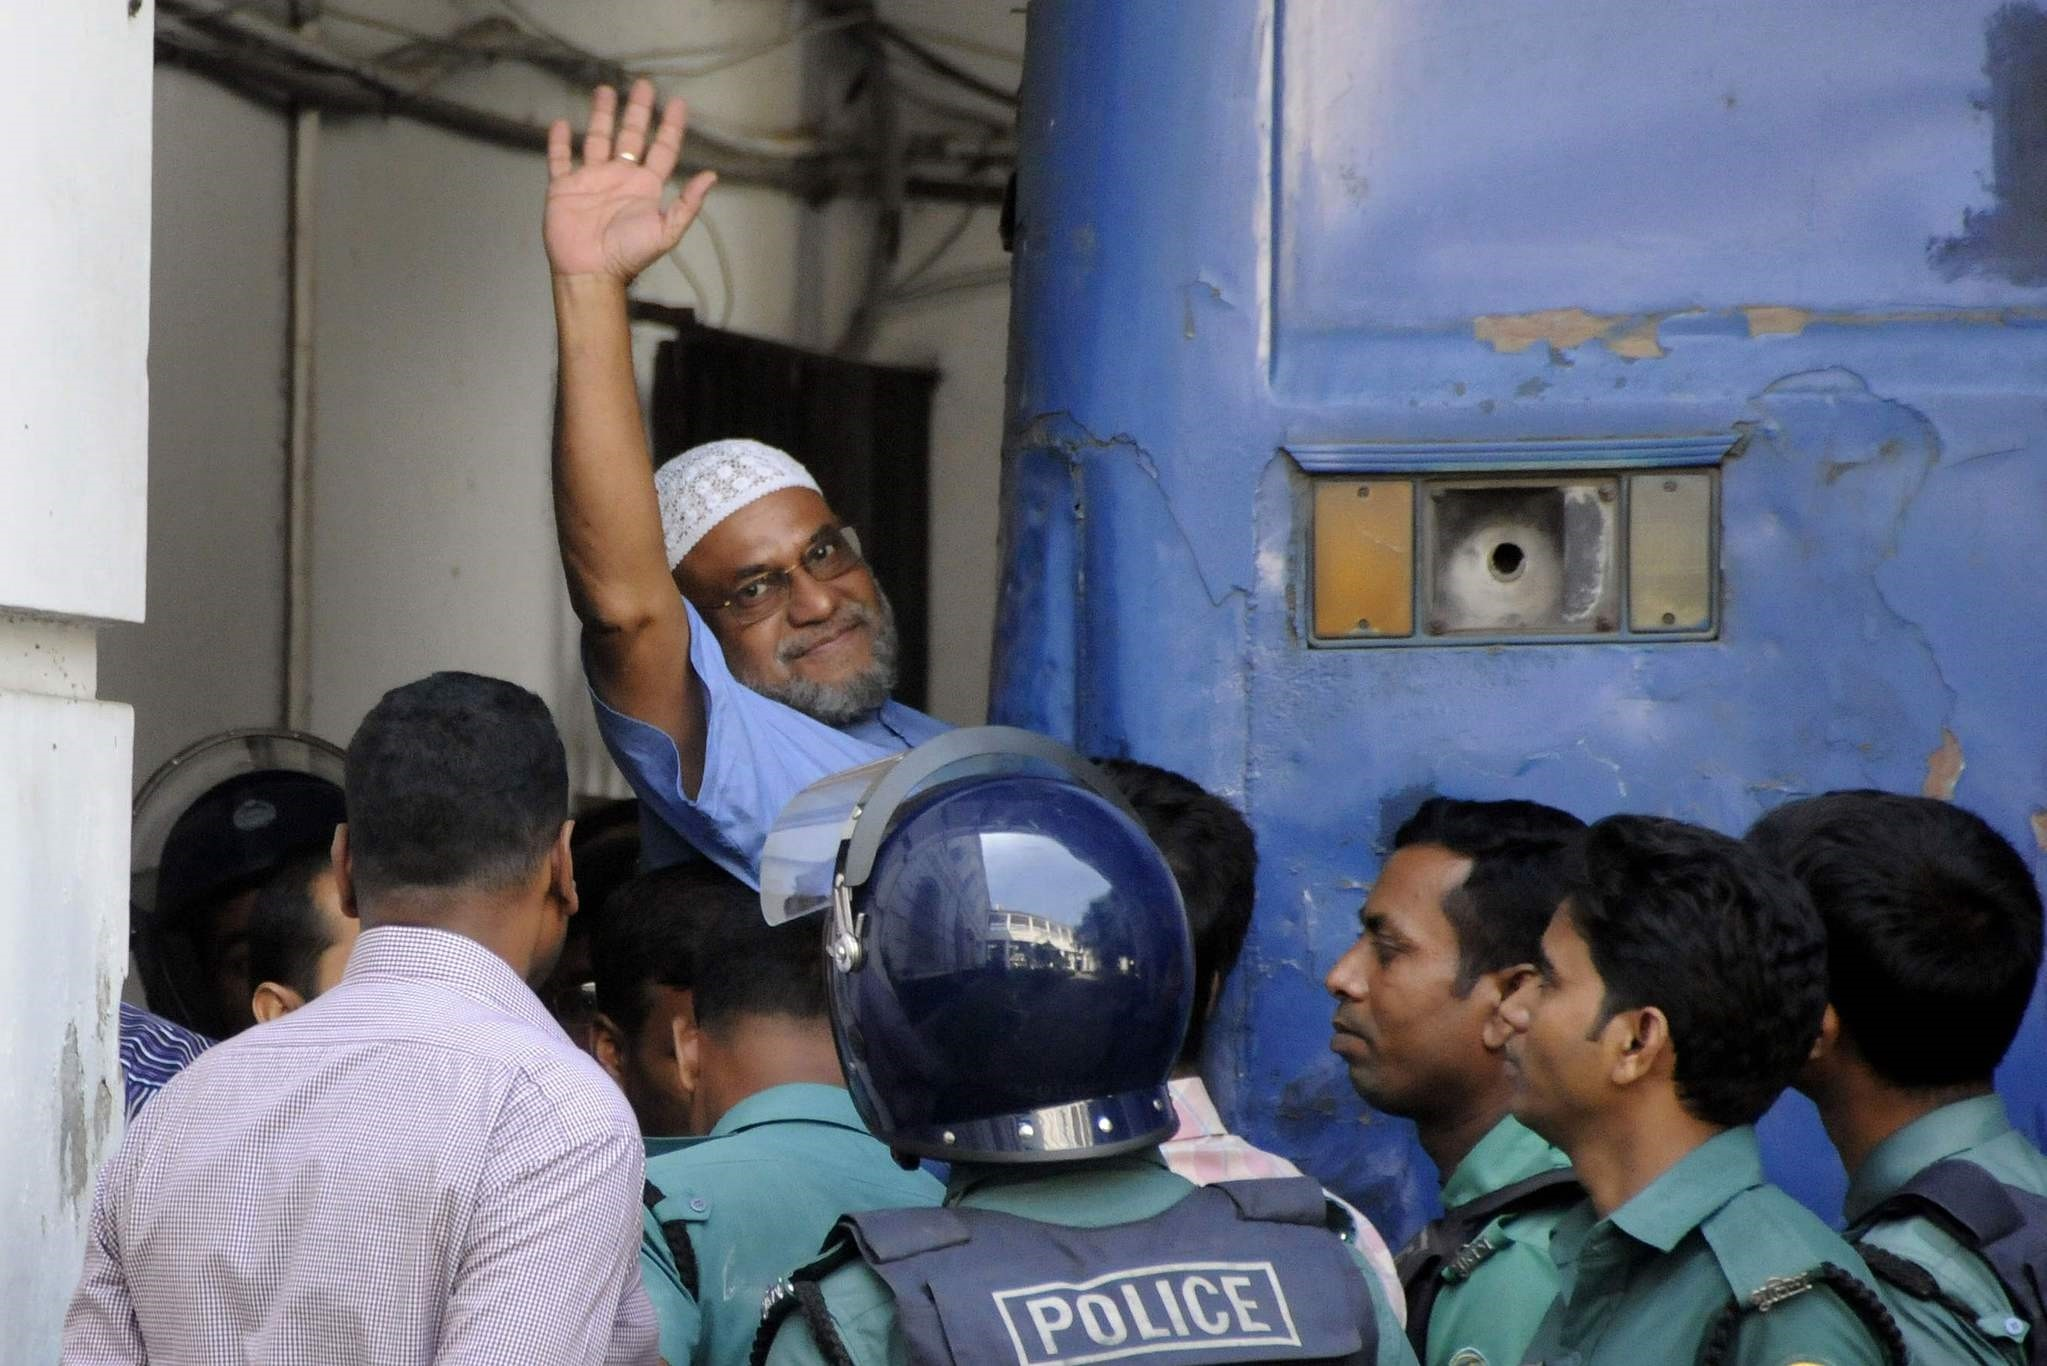 This file photograph taken on November 2, 2014, shows Bangladeshi Jamaat-e-Islami party leader, Mir Quasem Ali waving as he enters a van at the International Crimes Tribunal court in Dhaka. (AFP Photo)